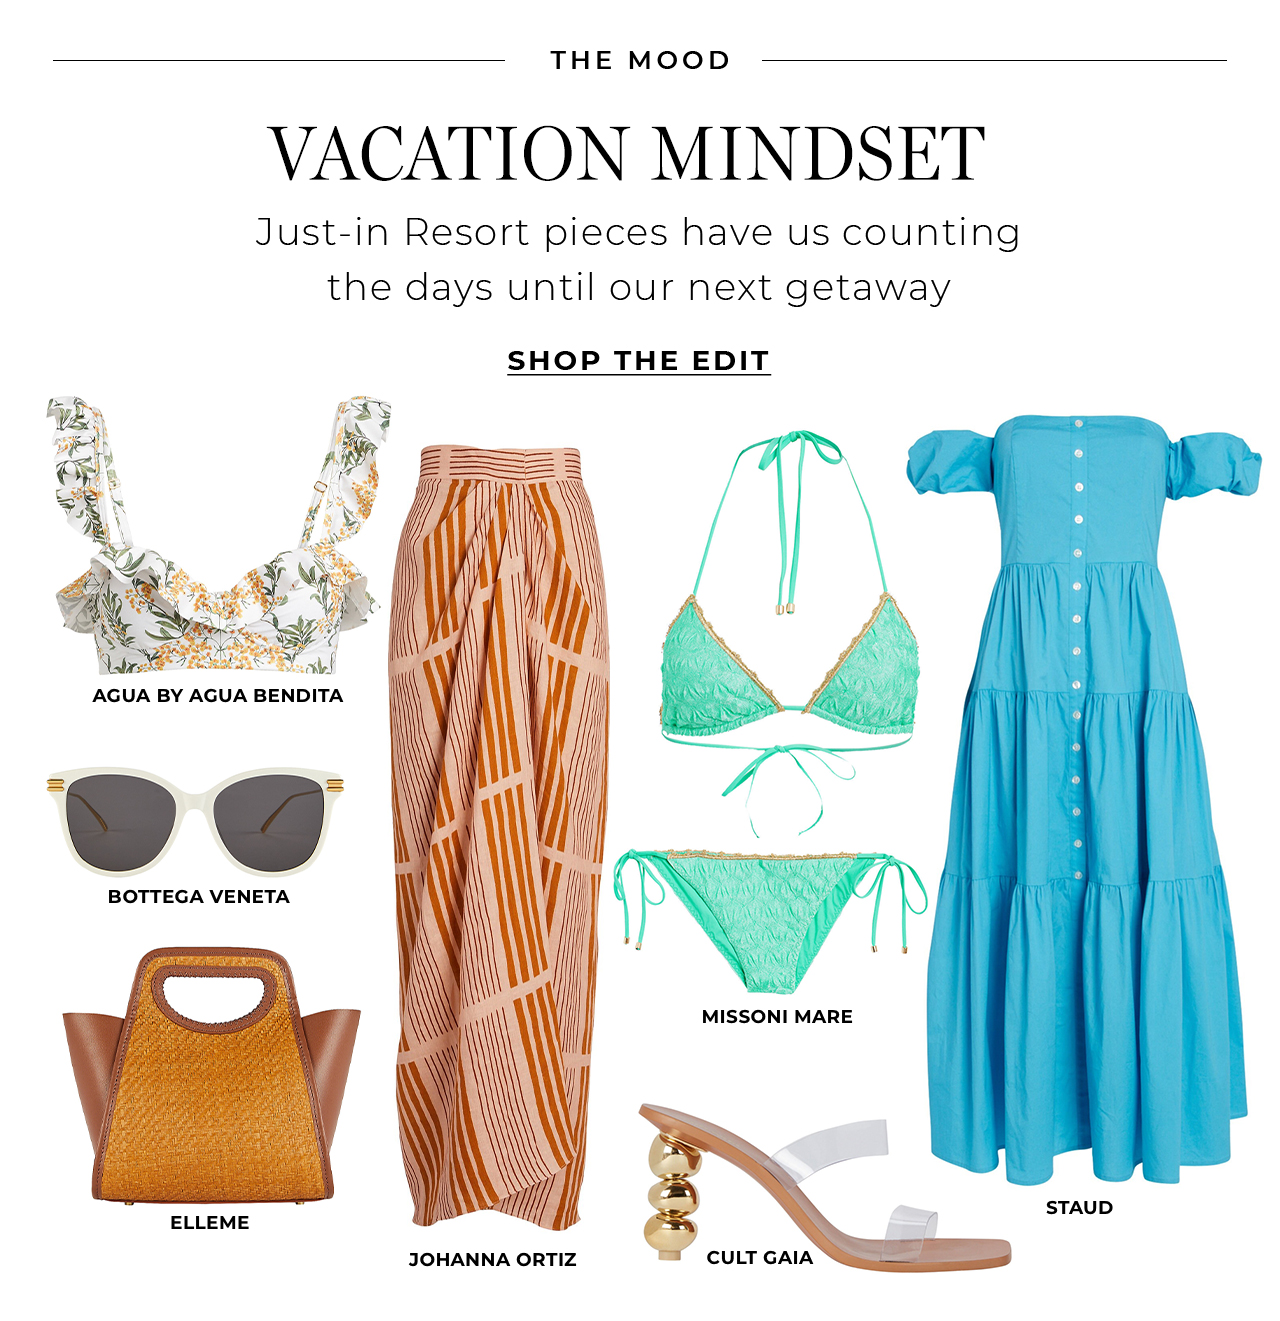 Just-in Resort pieces have us counting the days until our next getaway